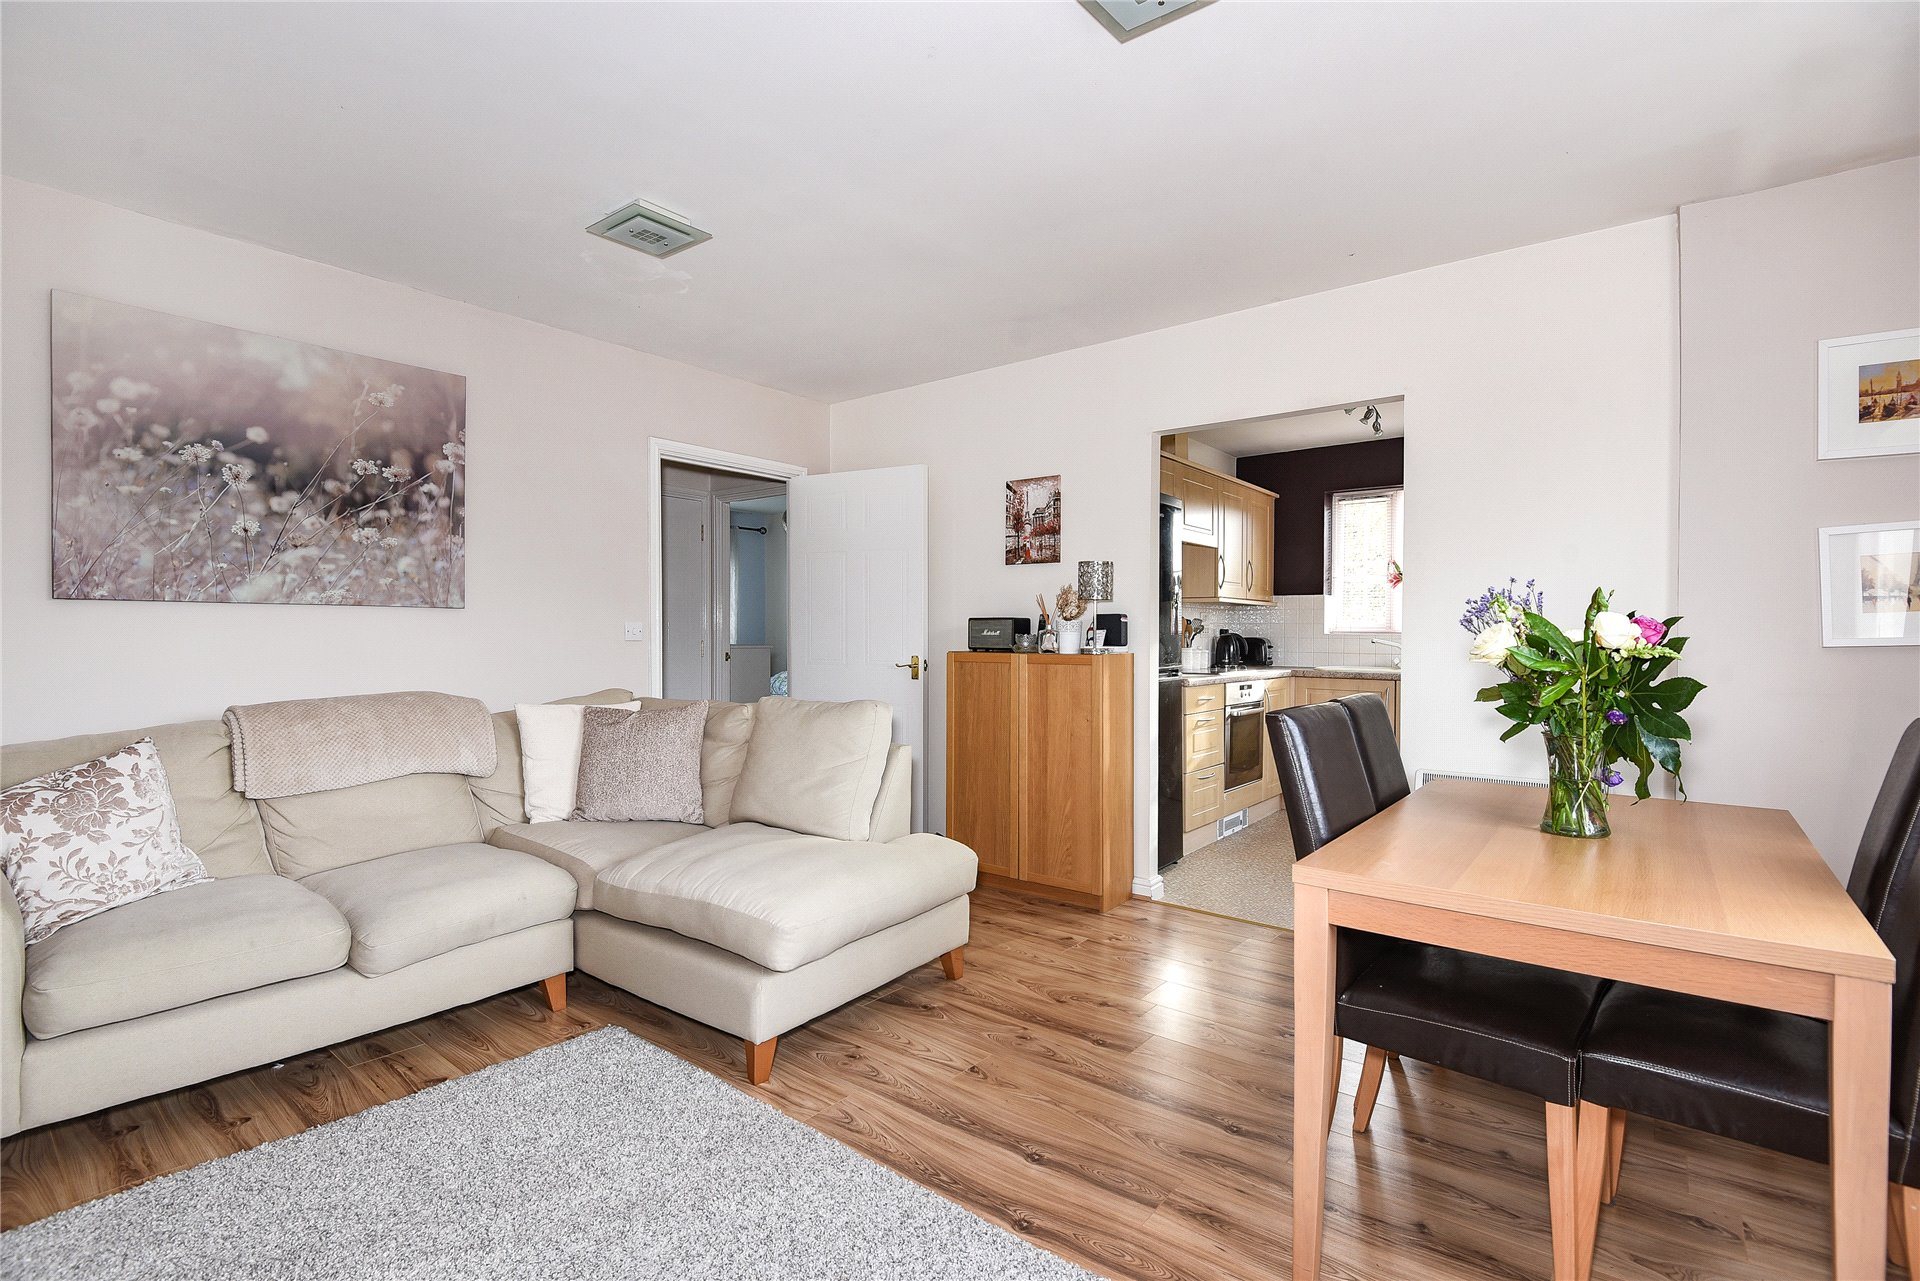 2 Bedrooms Apartment Flat for sale in Hopper Vale, Bracknell, Berkshire, RG12